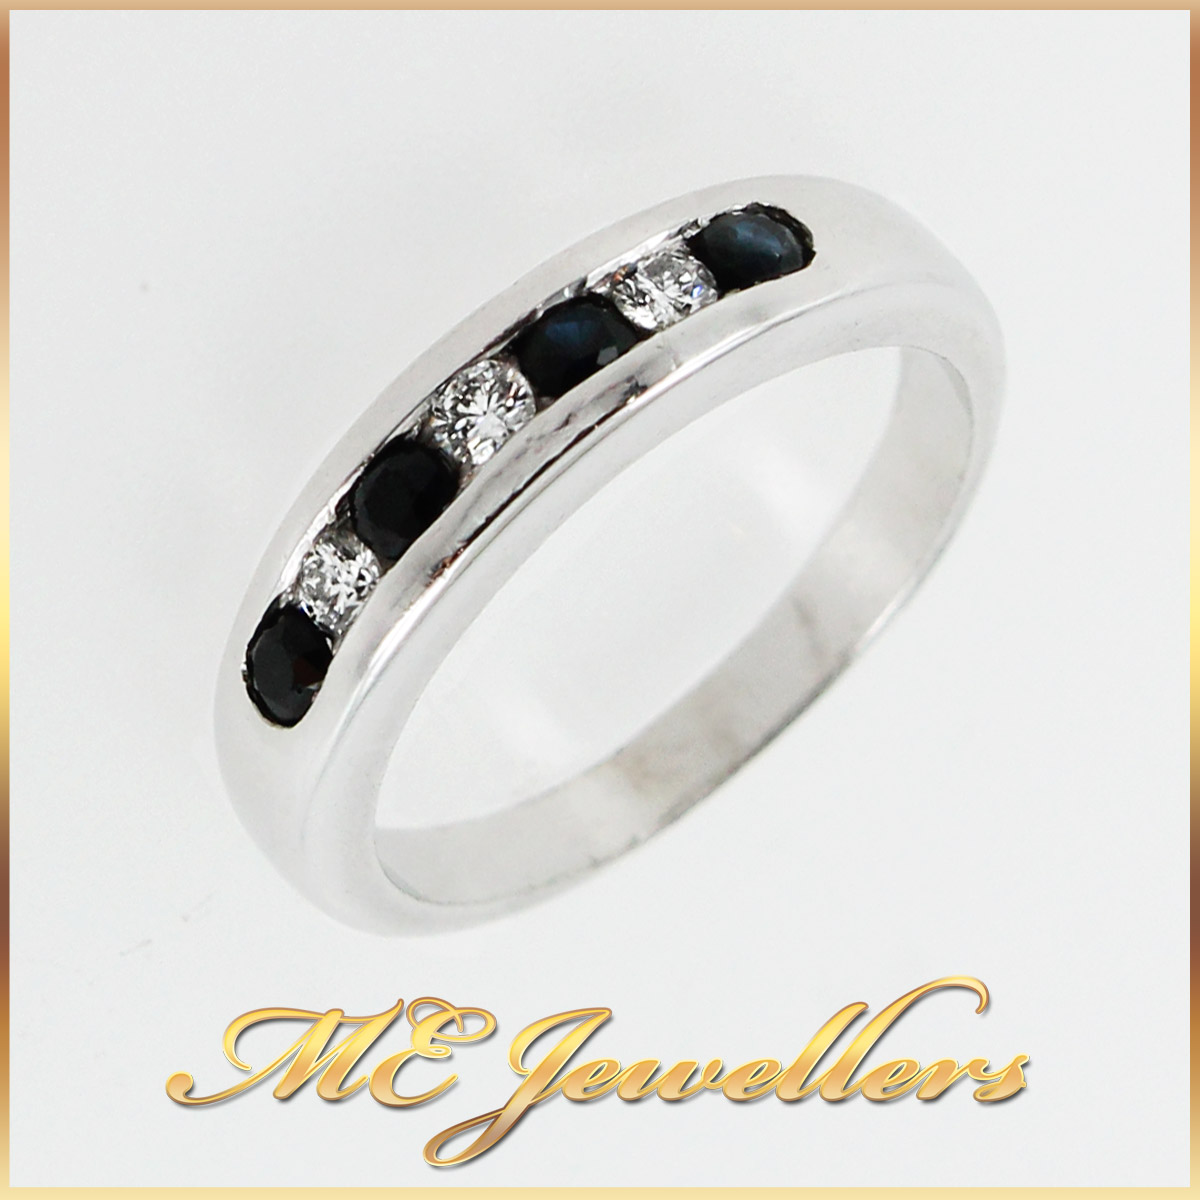 2426_Onyx ring with diamond in 9k white gold 7